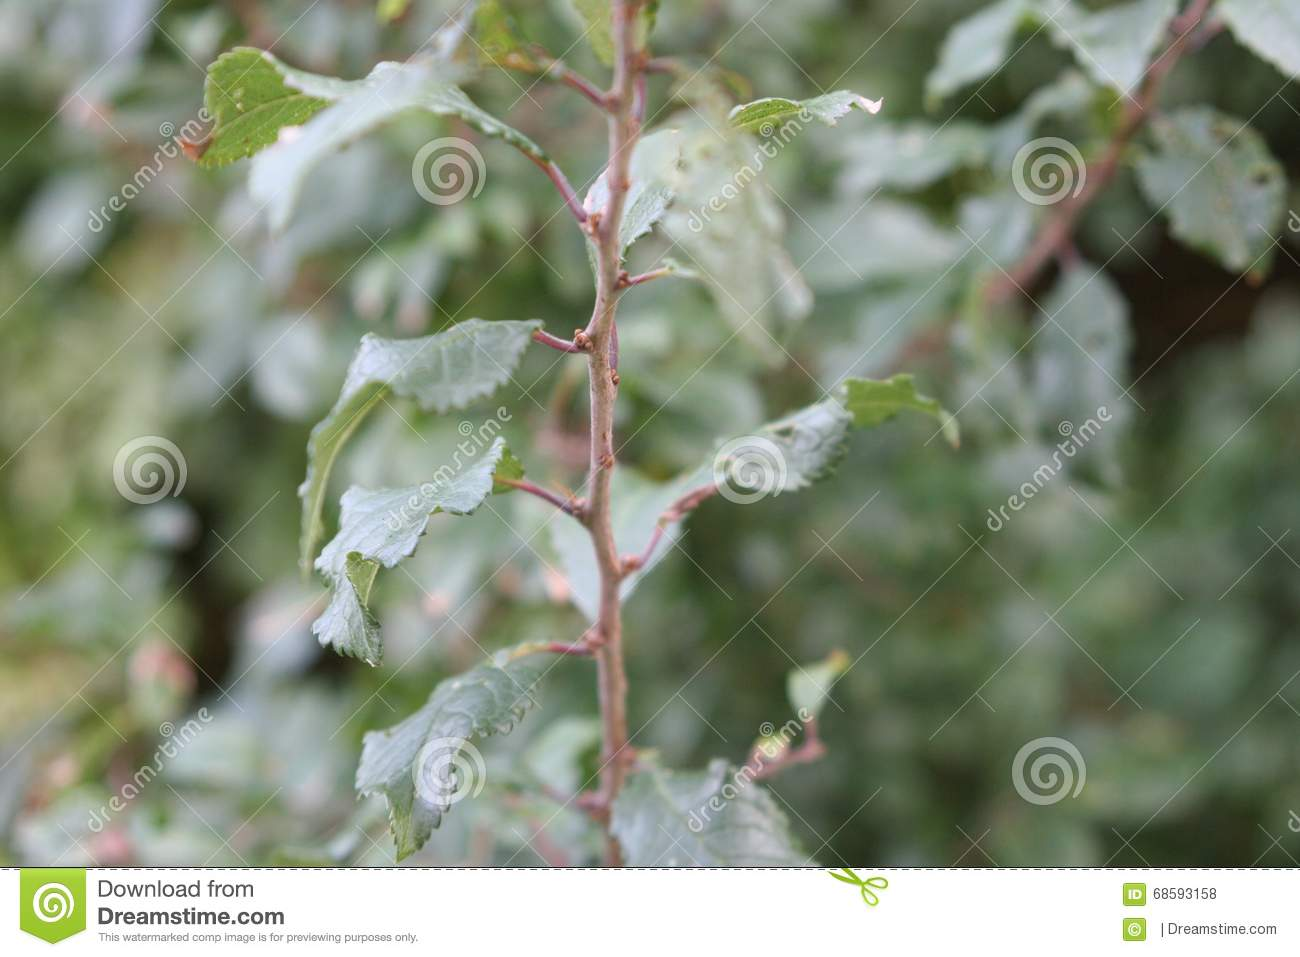 Leafs on a branch of a plant